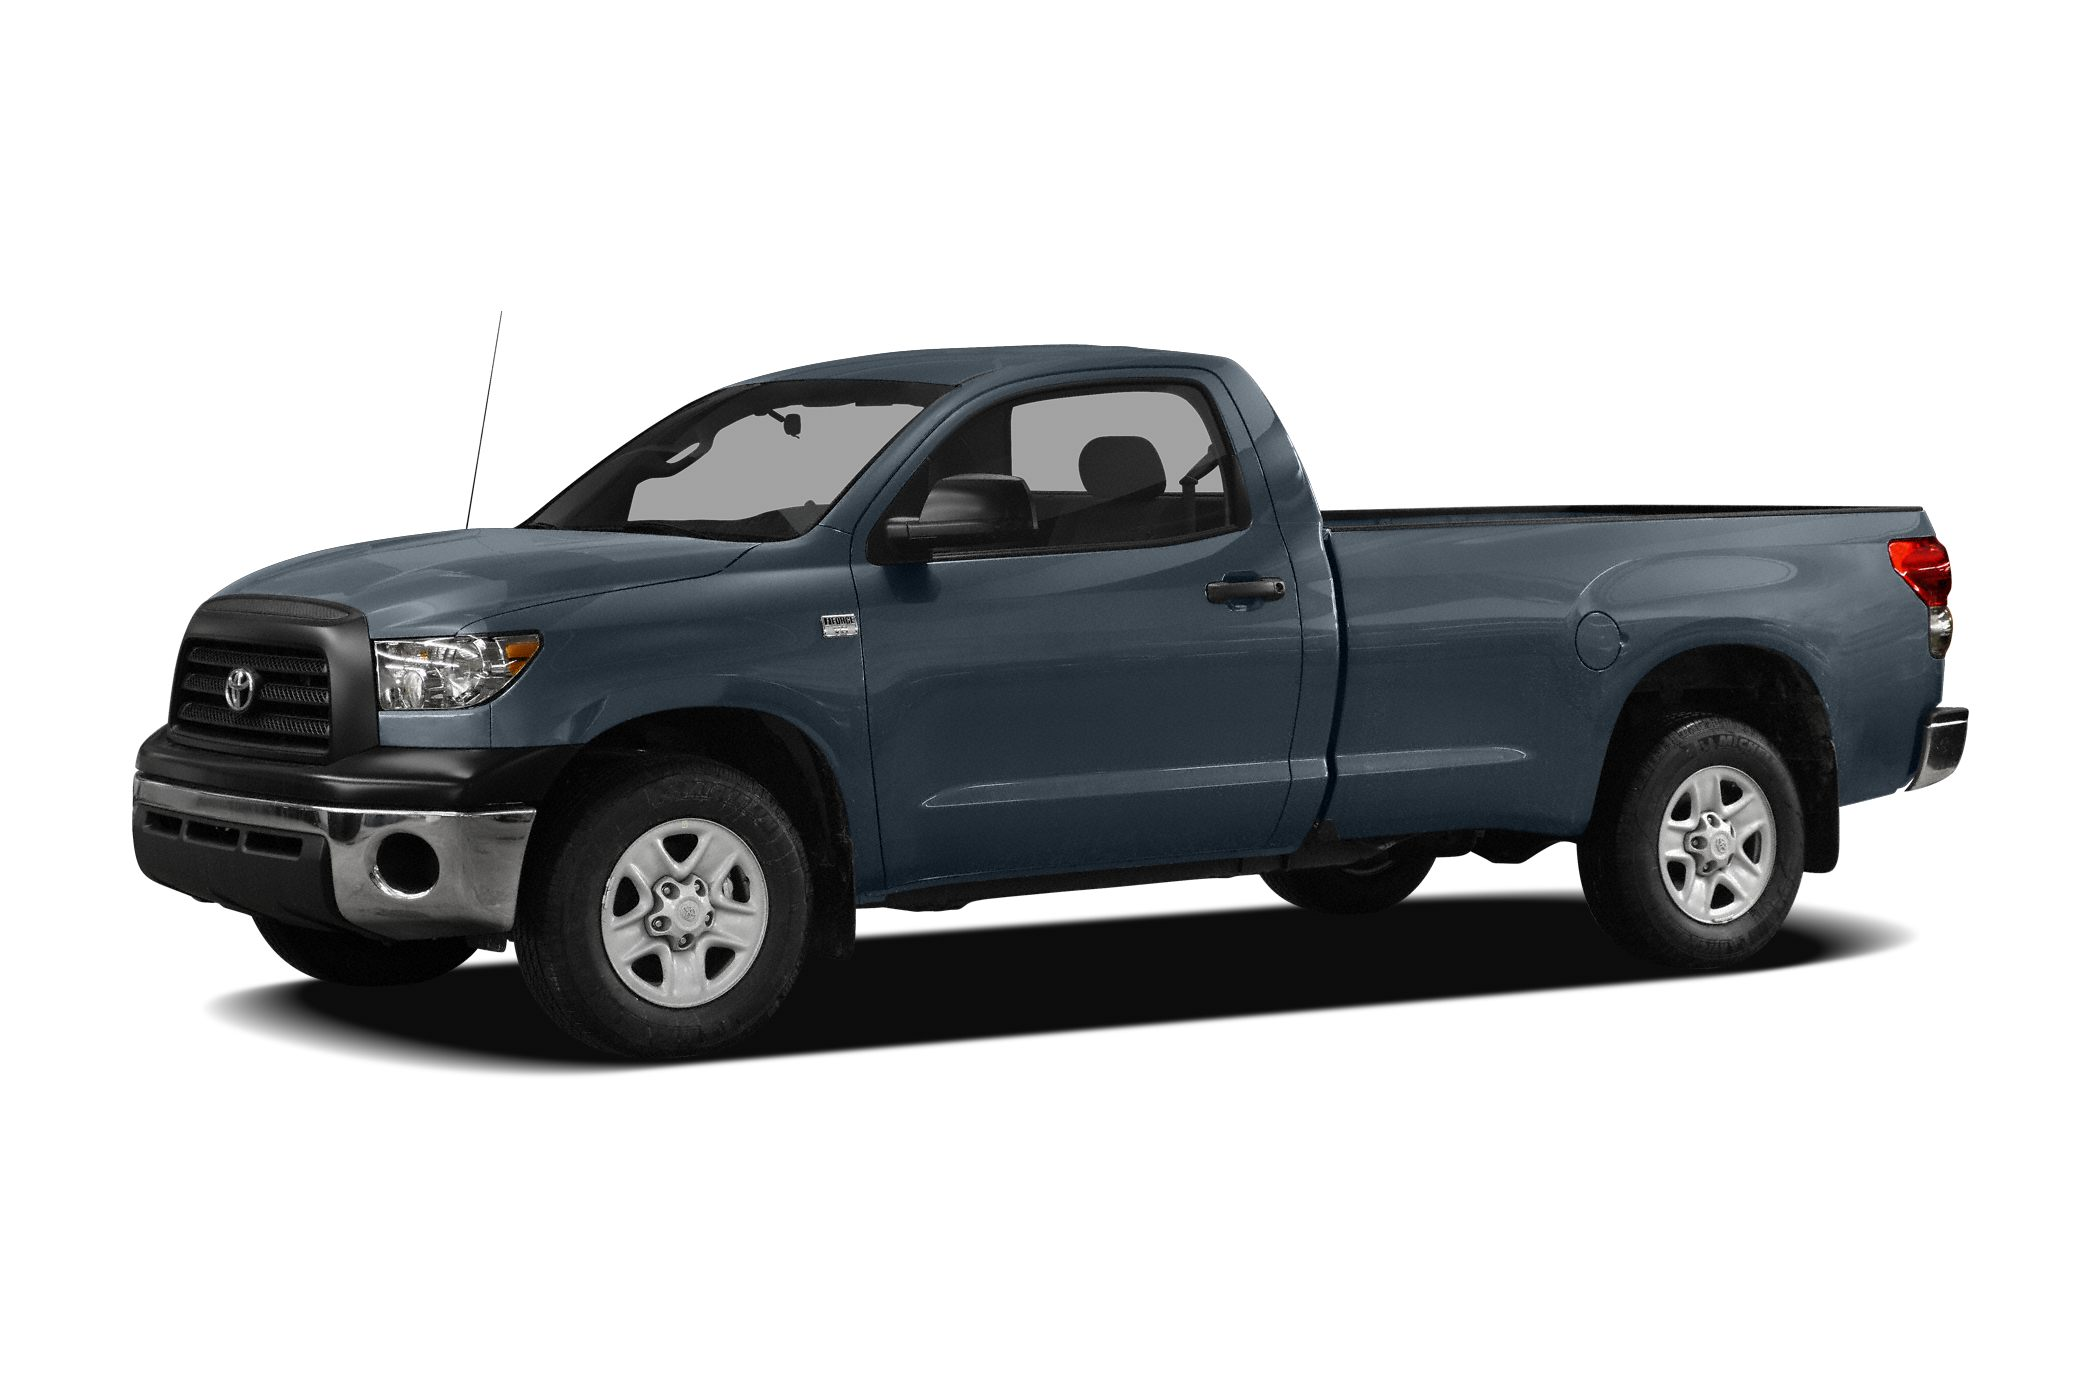 2009 Toyota Tundra Grade Regular Cab Pickup for sale in Prattville for $17,999 with 86,292 miles.